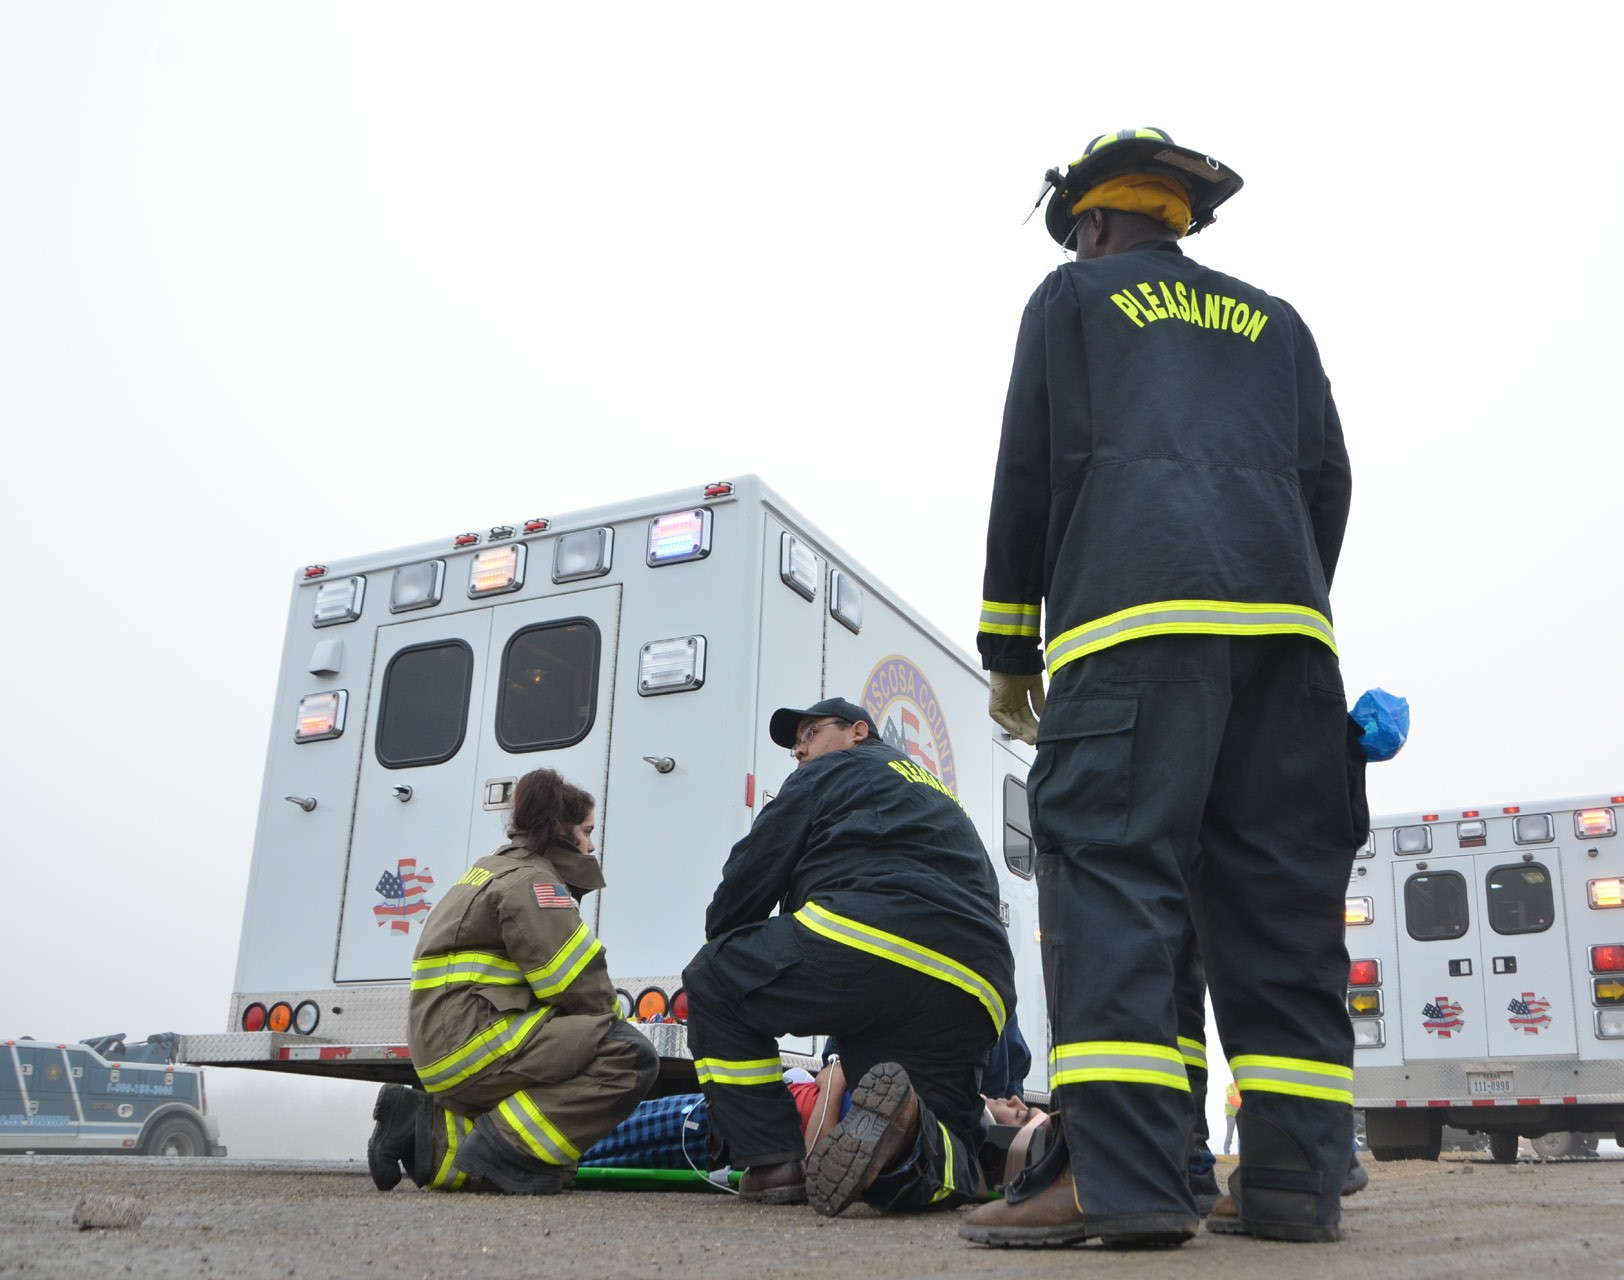 Fog is blamed for a four car pileup that happened around 8 a.m. on Saturday, March 1 at the corner of U.S. 281 and Wyoming Blvd, near the old perfume factory. Three EMS units transported five people to STRMC.